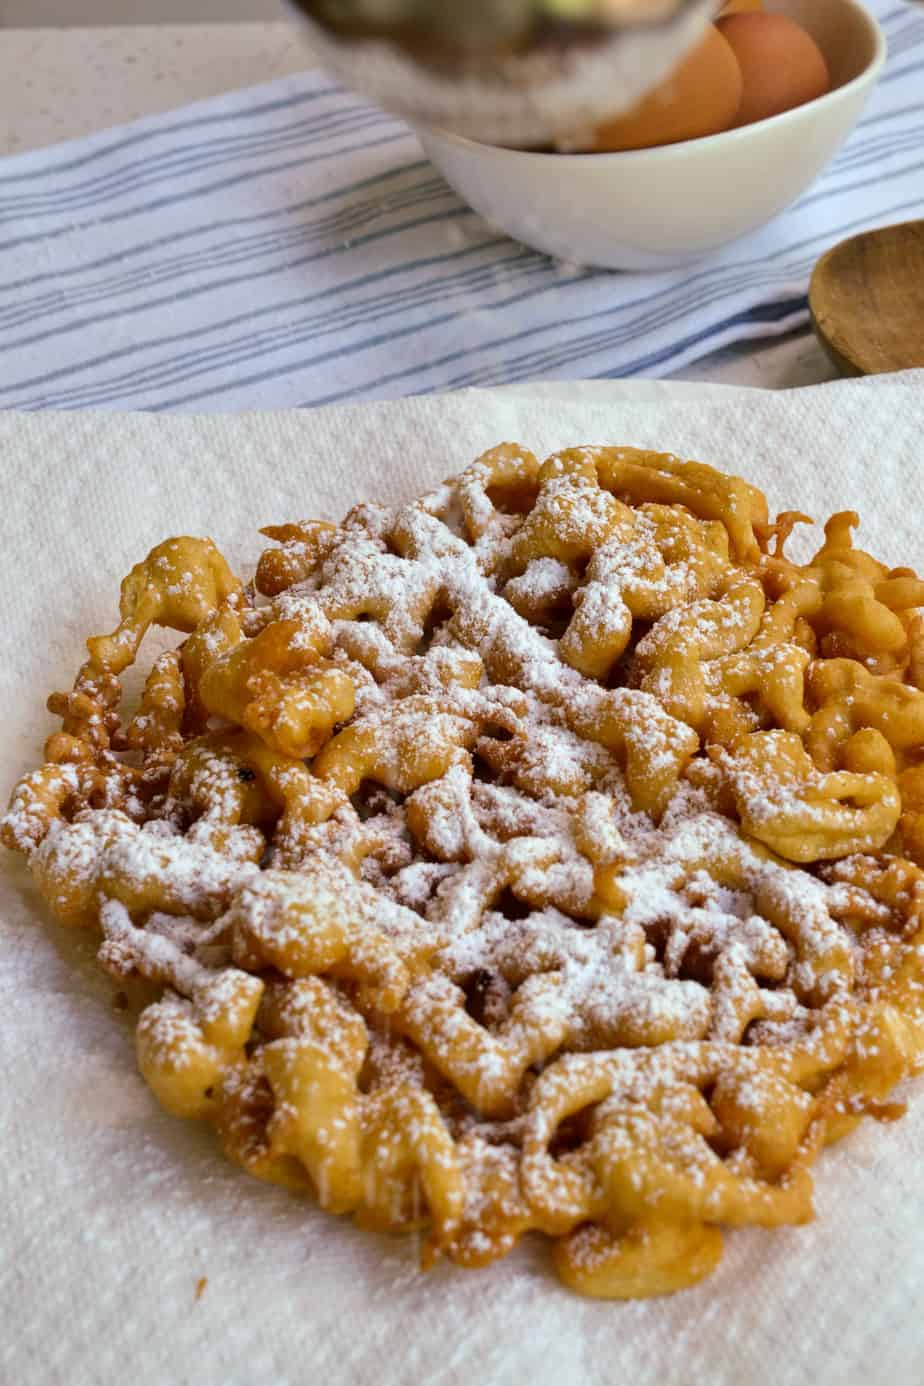 Homemade funnel cakes dusted with powdered sugar.